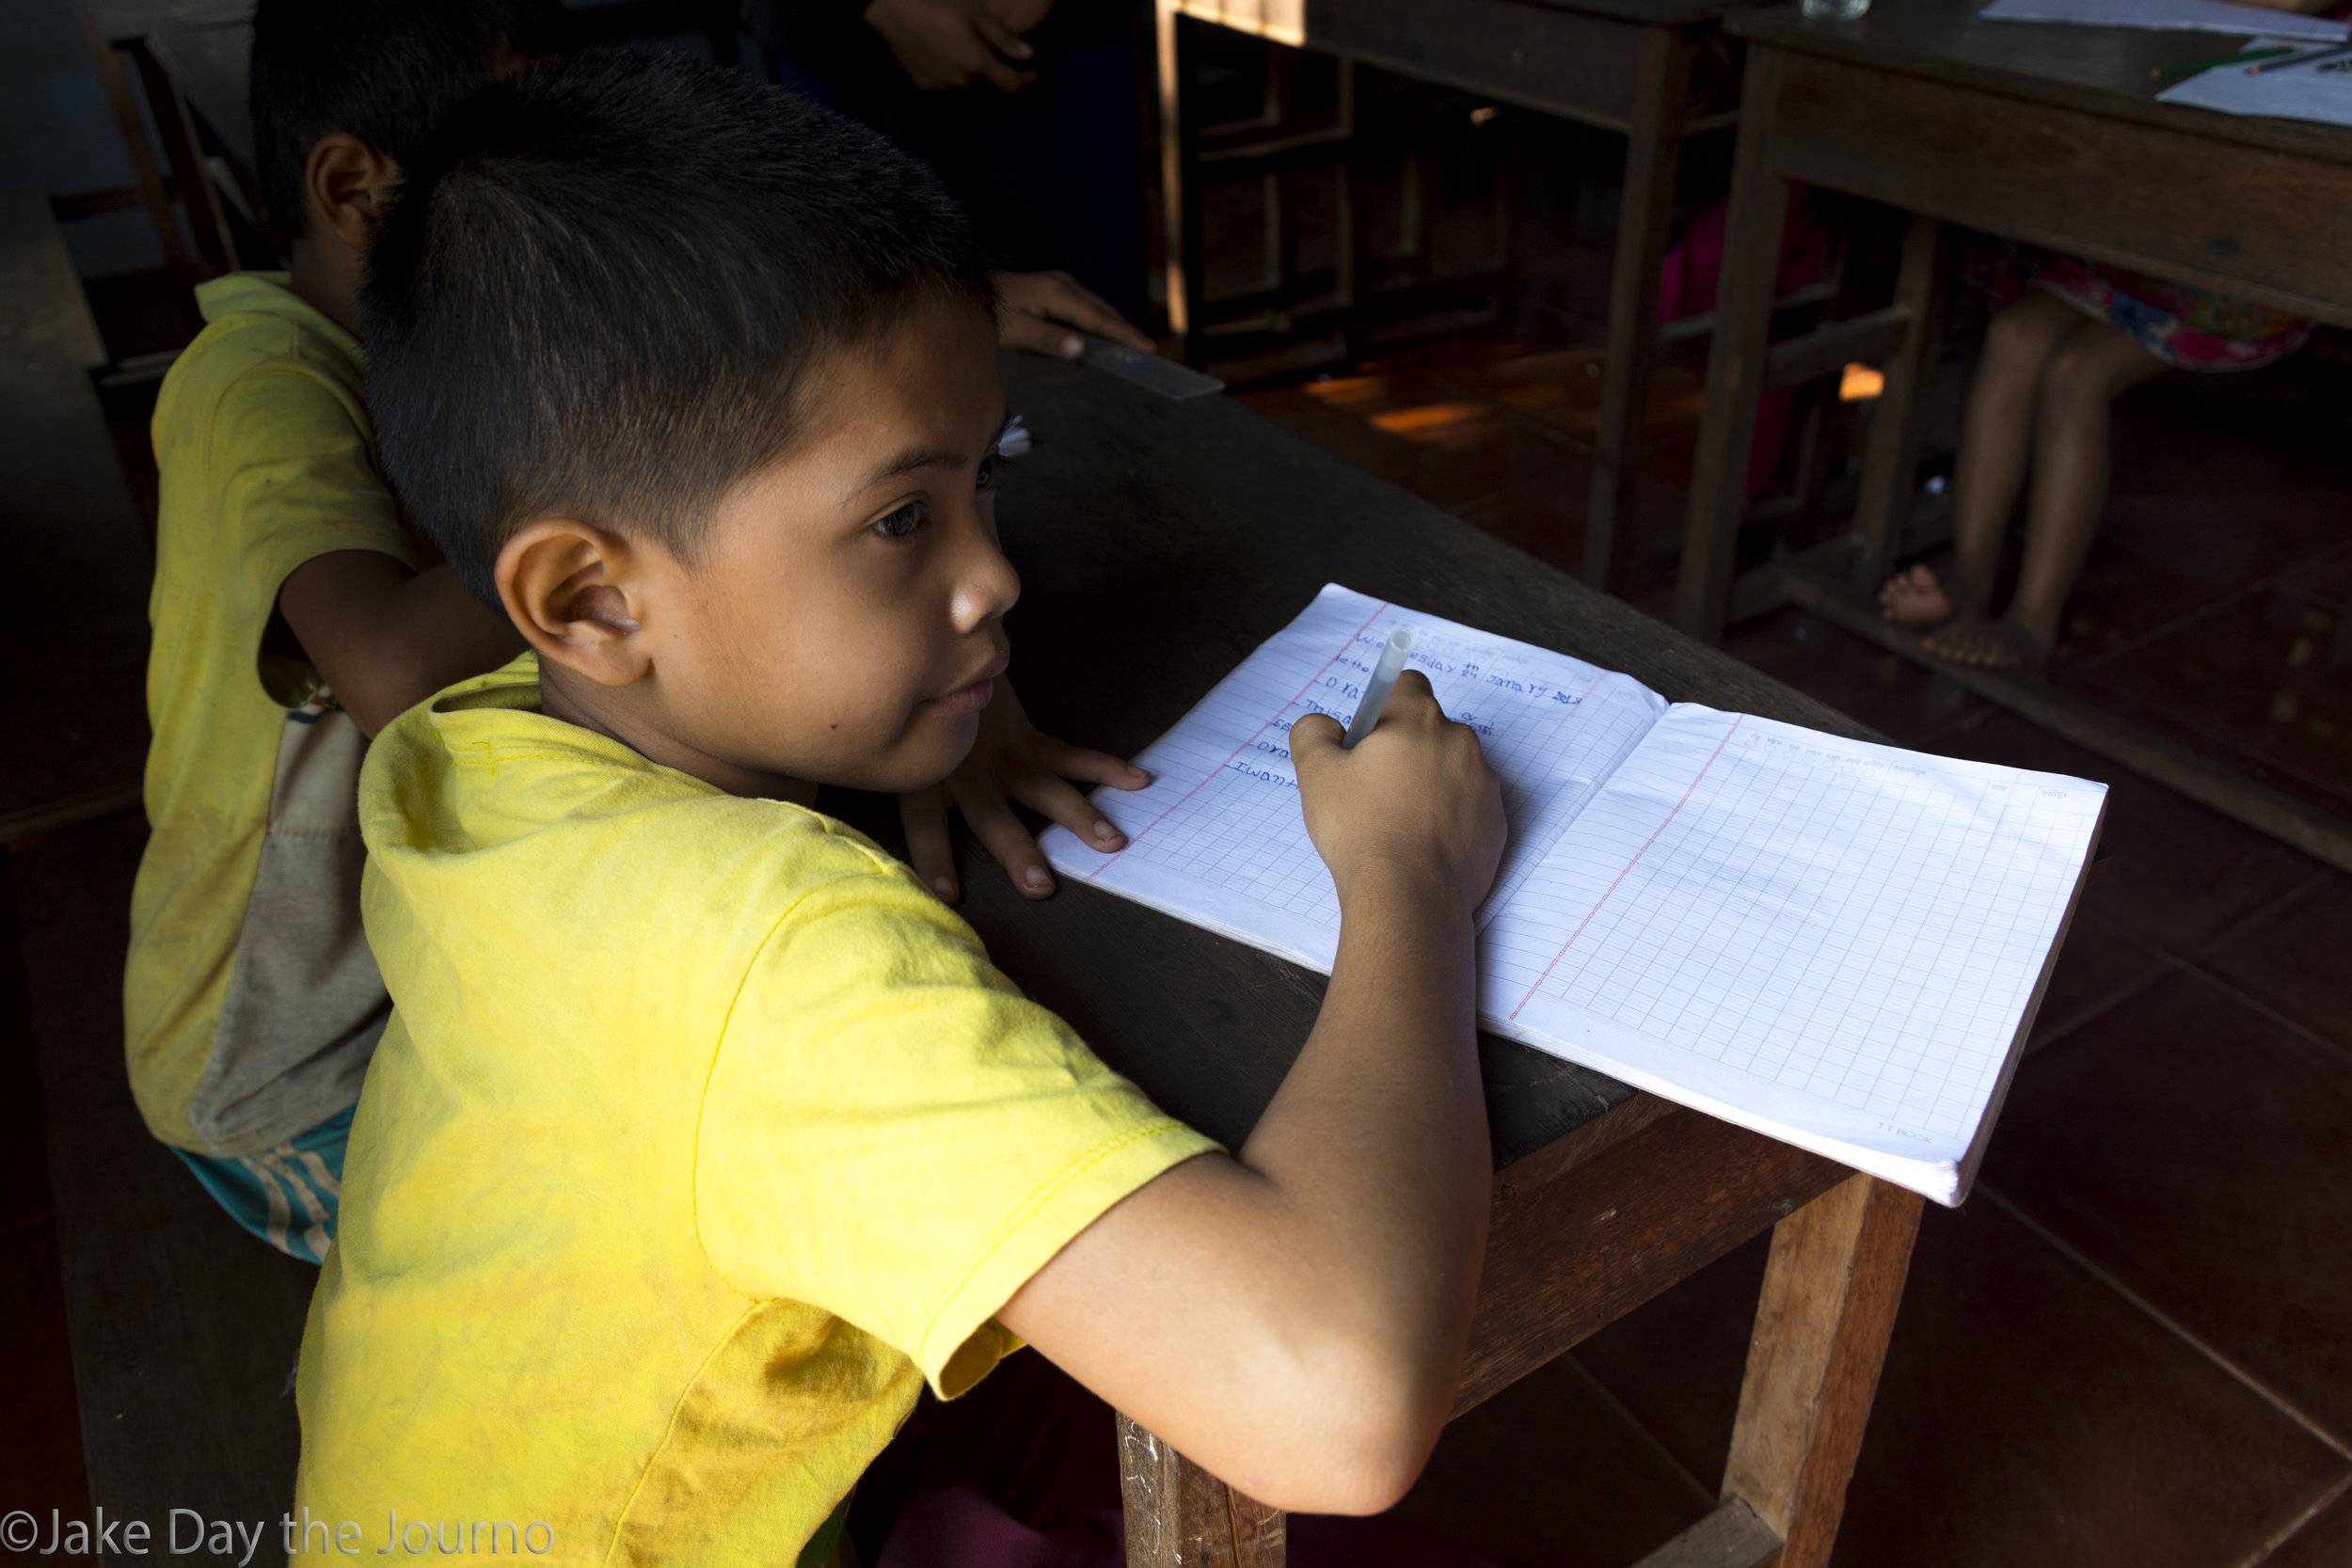 Beanglom, 9, practices English at Savong's School, Don Teav Village, on 24/01/18 by Jake Day.